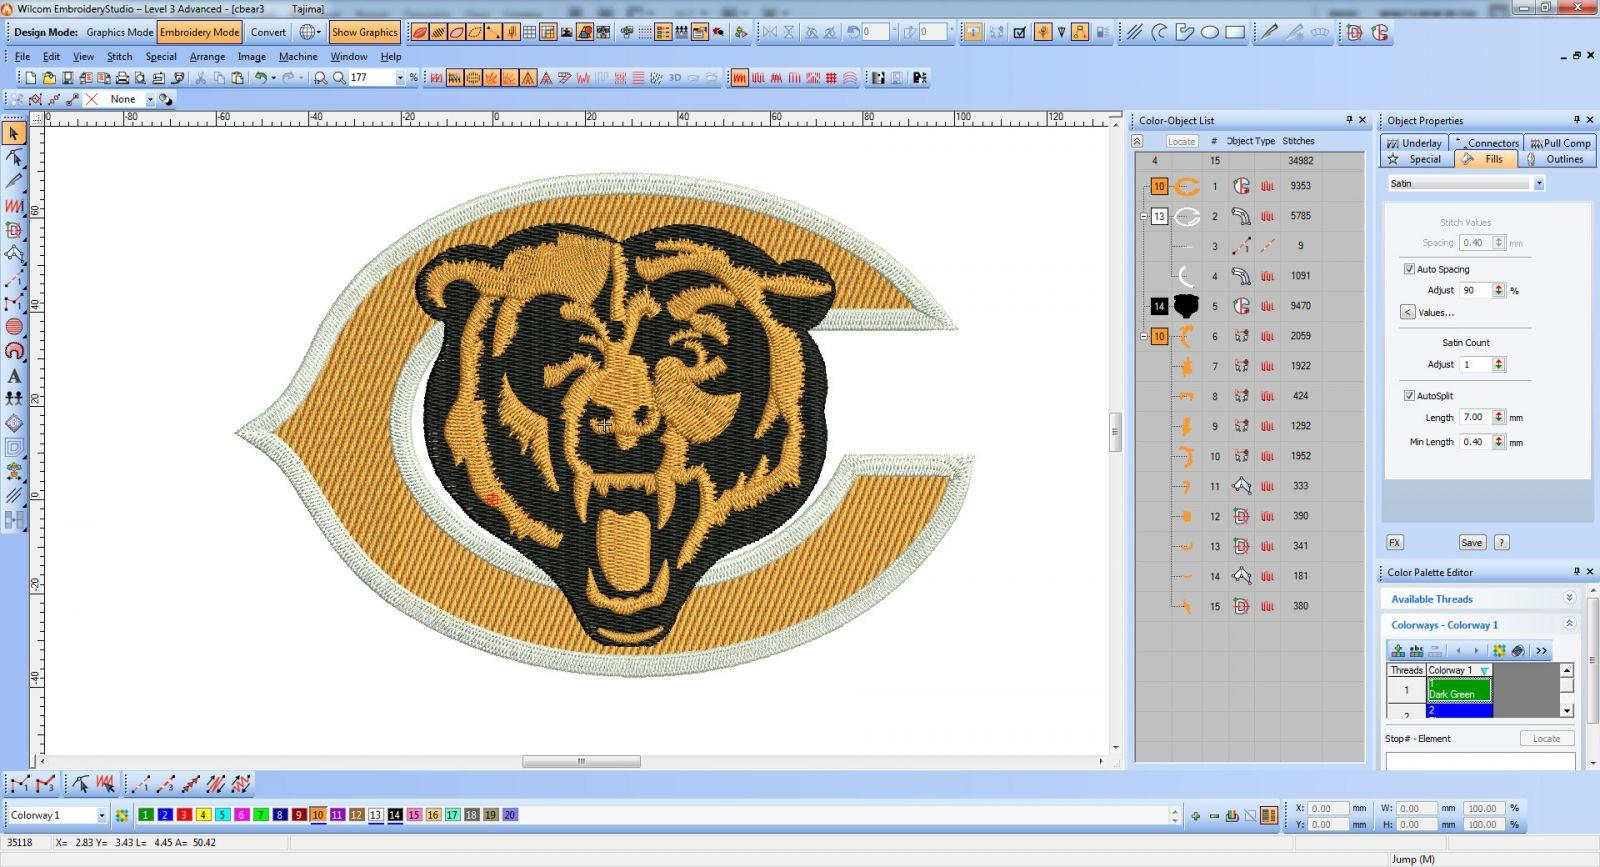 Chicago Bears logo embroidery